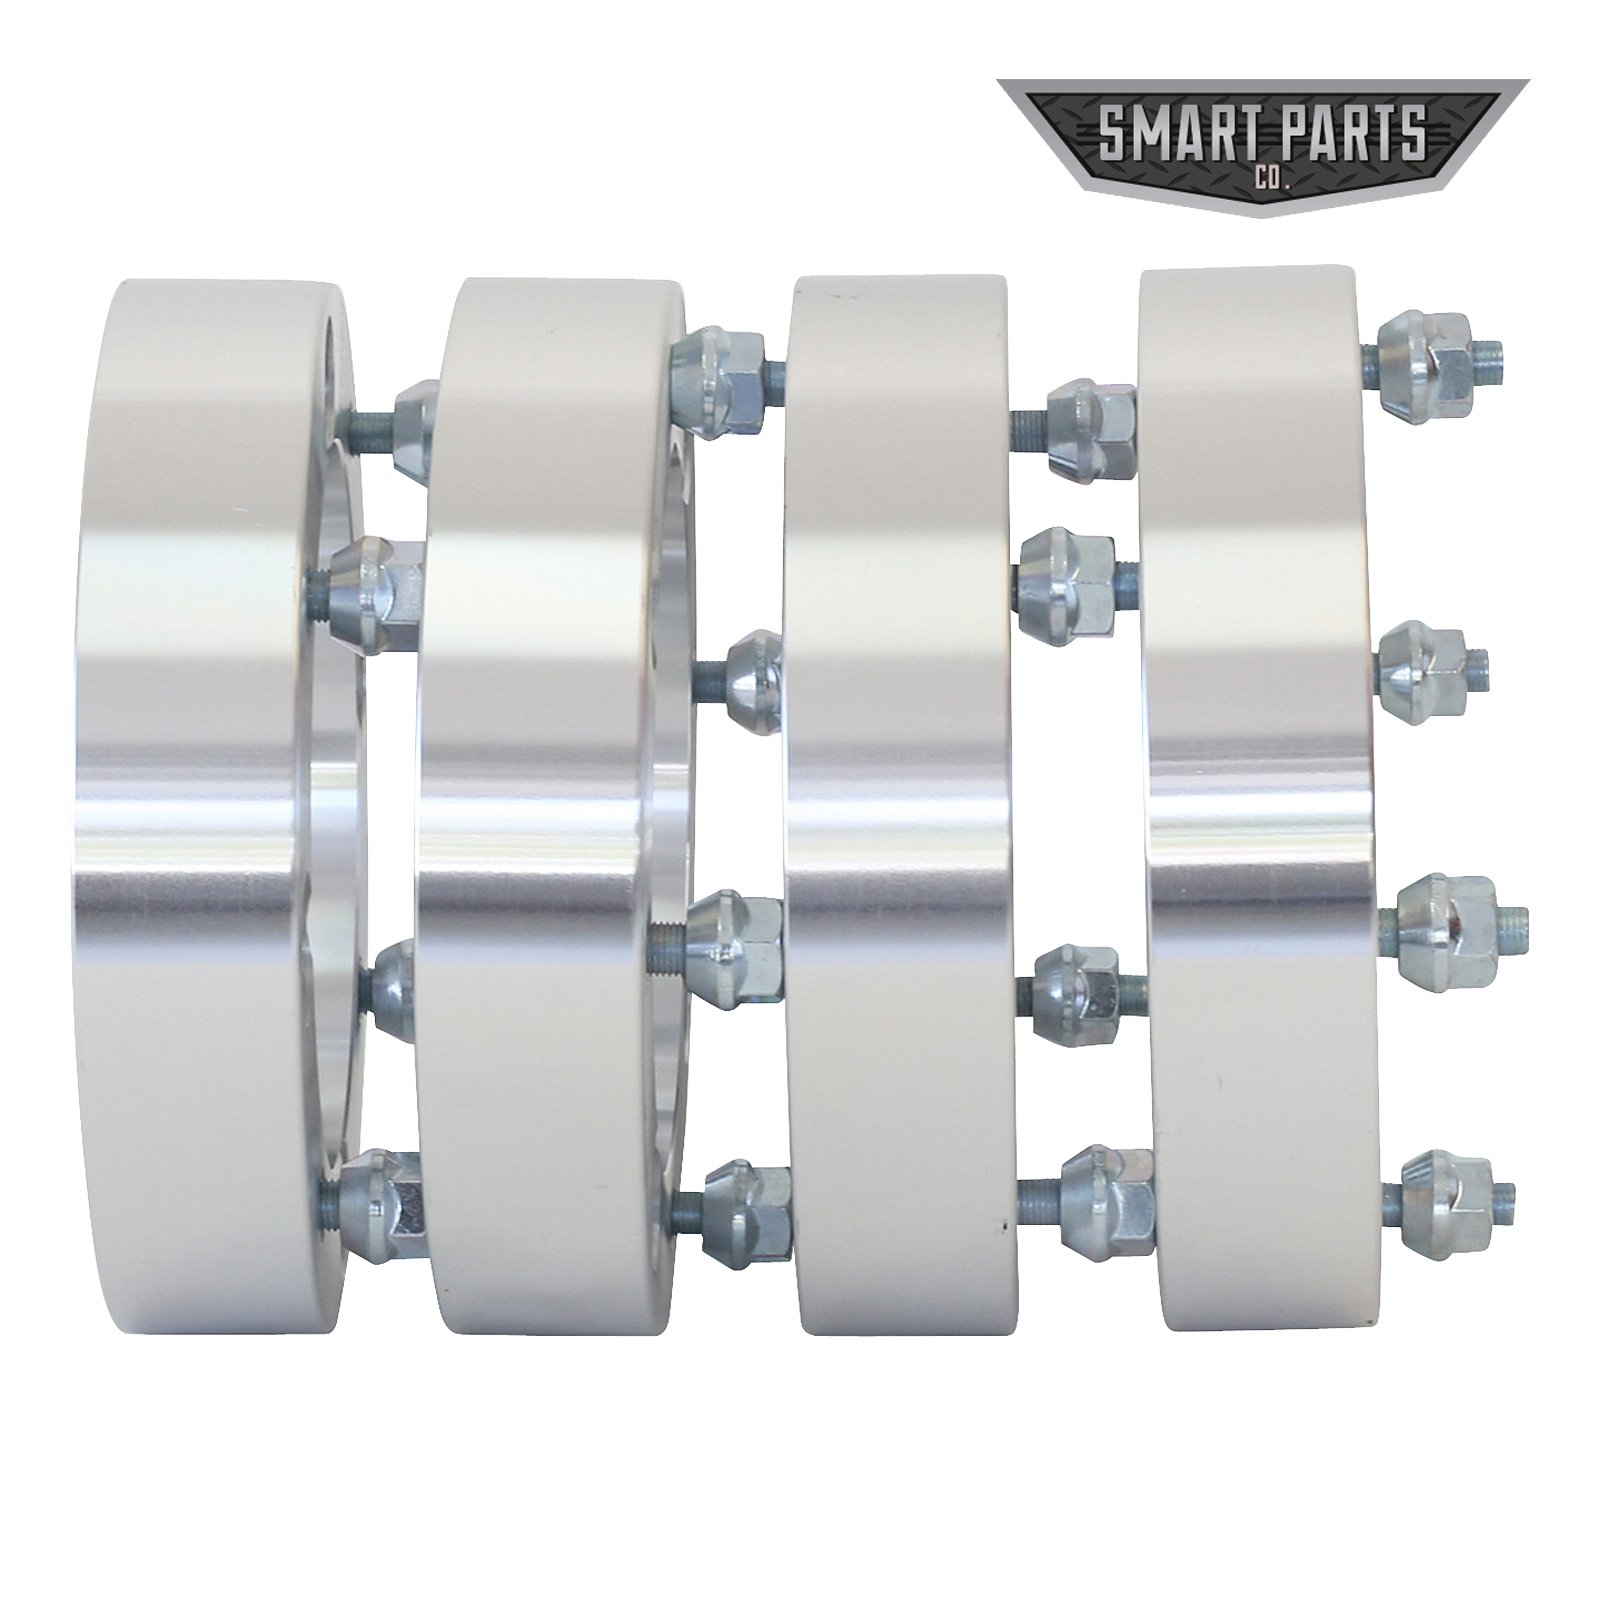 "4 ATV Wheel Spacers 4x156 – wheel spacer 1.50"" thick; I.D.=131mm; counter bore=141mm X 9.1mm deep; studs = M12x1.5 Polaris RZR Ranger by Smart Parts (Image #3)"